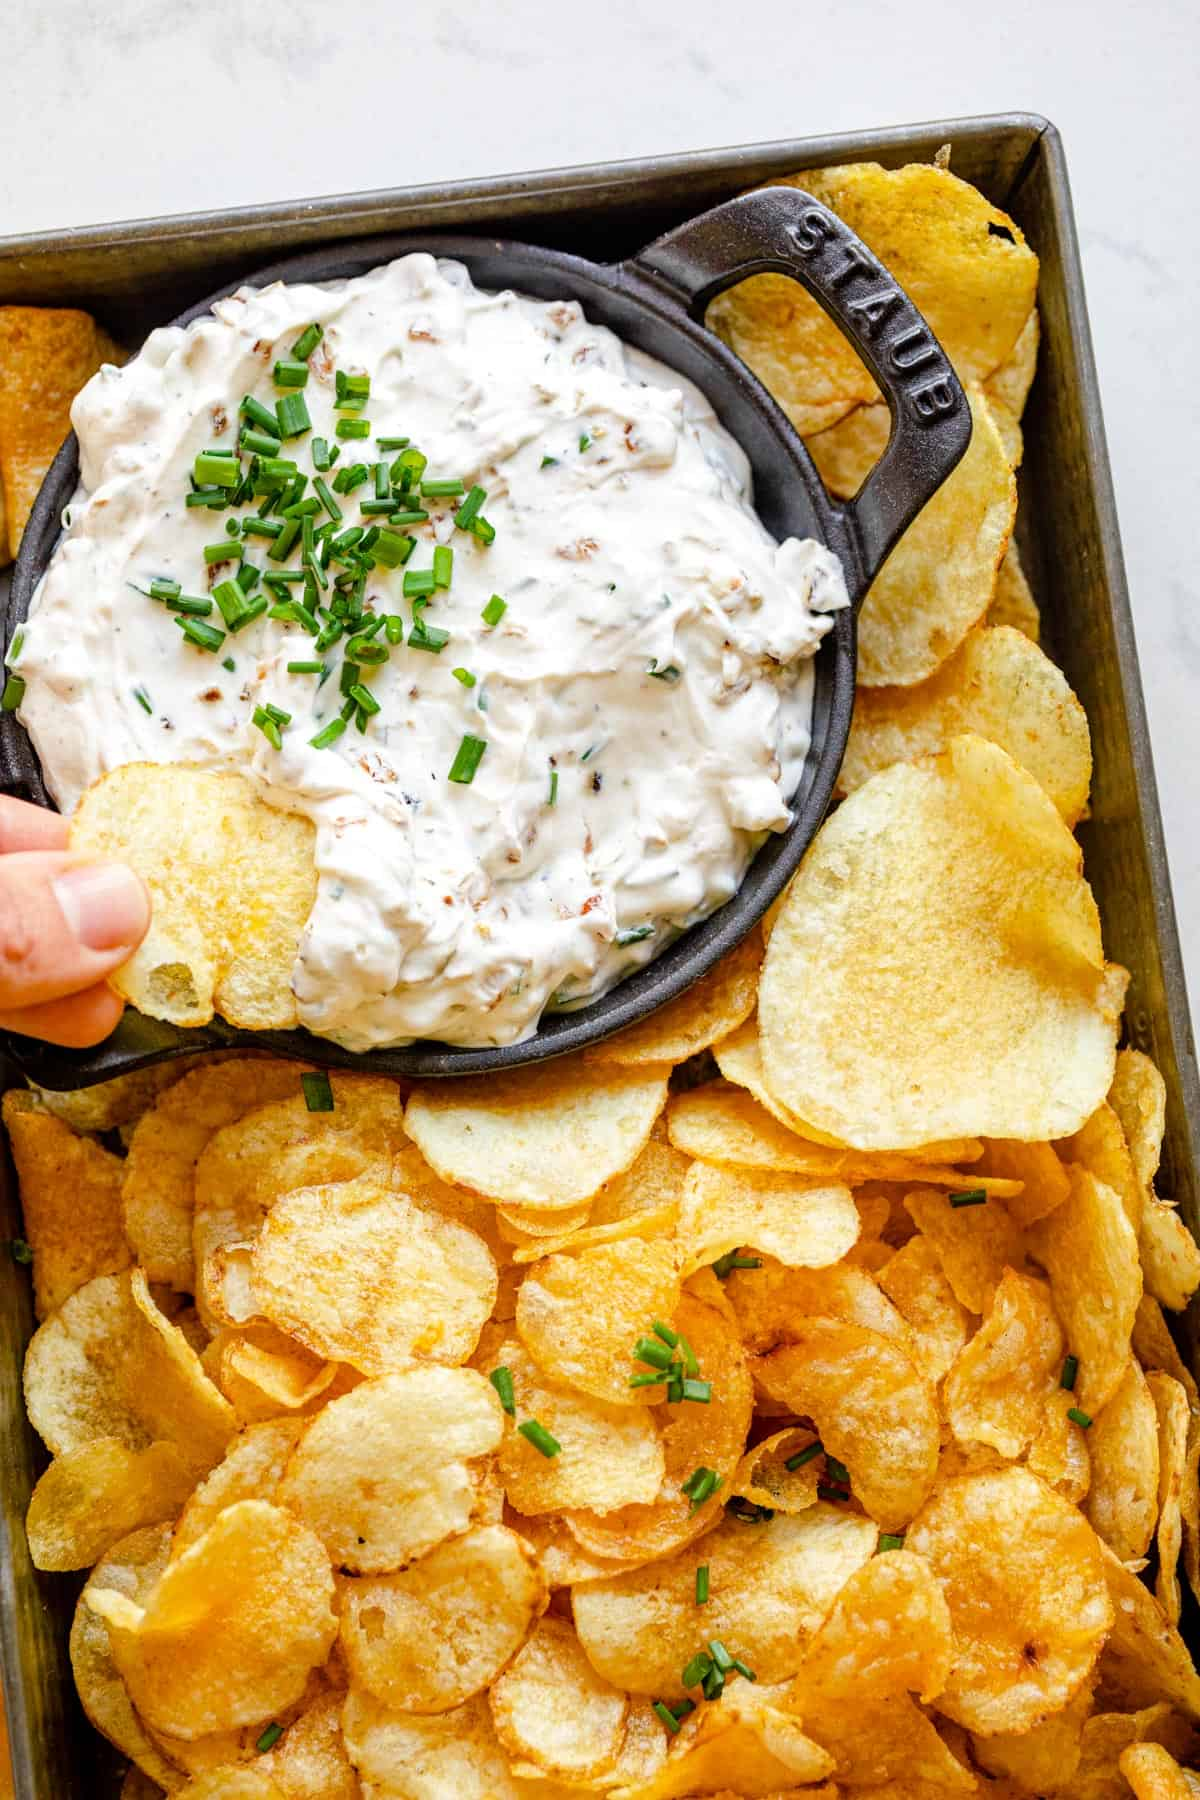 Close up shot with potato chip dipping into french onion dip